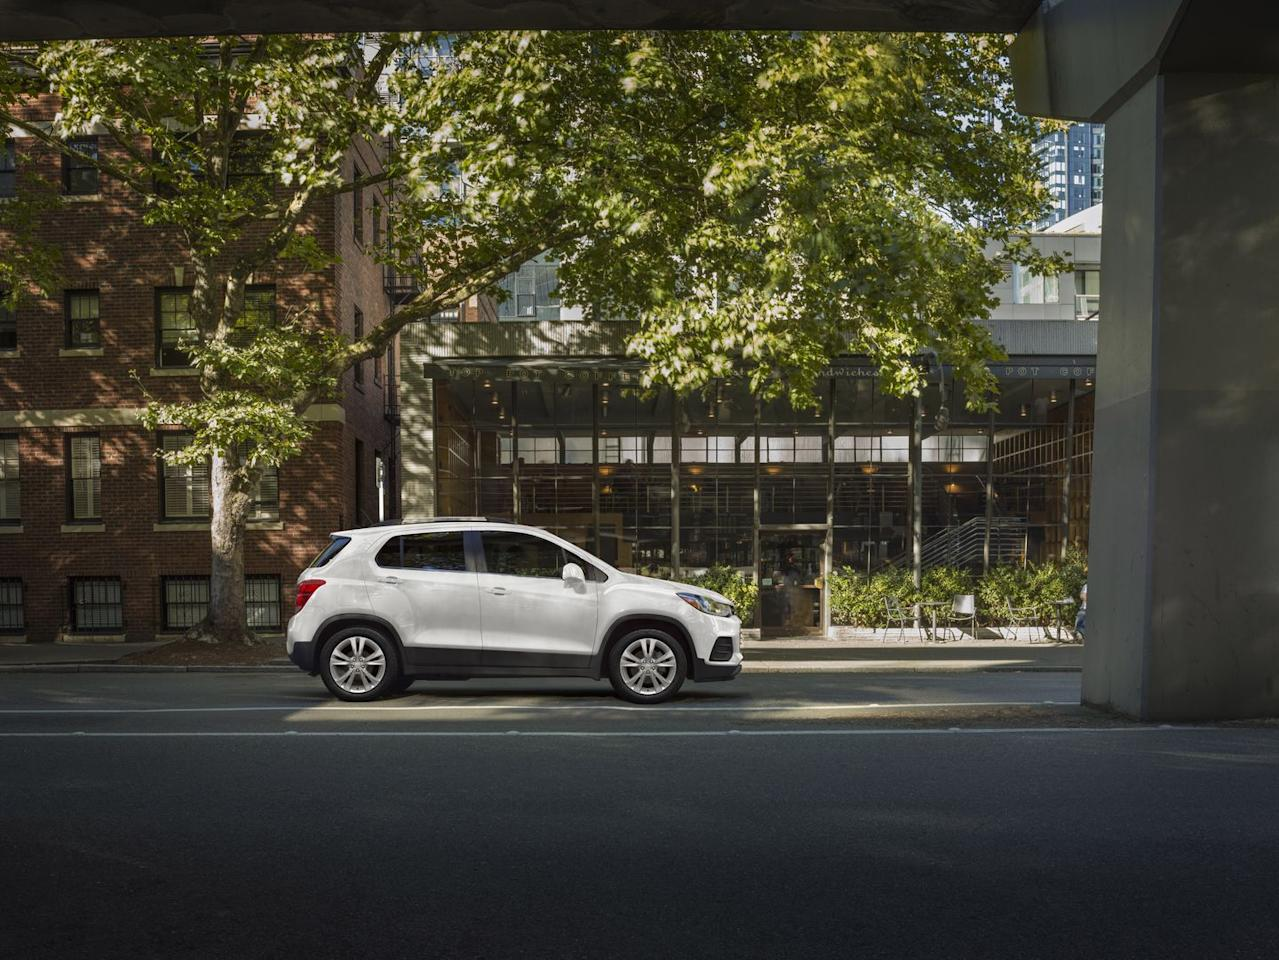 "<p>Despite a cool name, <a rel=""nofollow"" href=""https://www.caranddriver.com/chevrolet/trax"">the Trax</a> is an unadventurous choice in a segment with more exciting, fun-to-drive choices. (The mechanically similar Buick Encore, for example, is a more distinguished offering.) The Chevy offers a roomy cabin and is powered by a 138-hp 1.4-liter turbo four with a six-speed automatic; take your pick of either front- or all-wheel drive. Steering feedback is okay, and the ride is smooth, but the Trax is tuned more for comfort than sport. Inside, there's lots of tech, with 4G LTE, a built-in Wi-Fi hotspot, and a 7.0-inch touchscreen featuring Apple CarPlay and Android Auto compatibility.</p>"